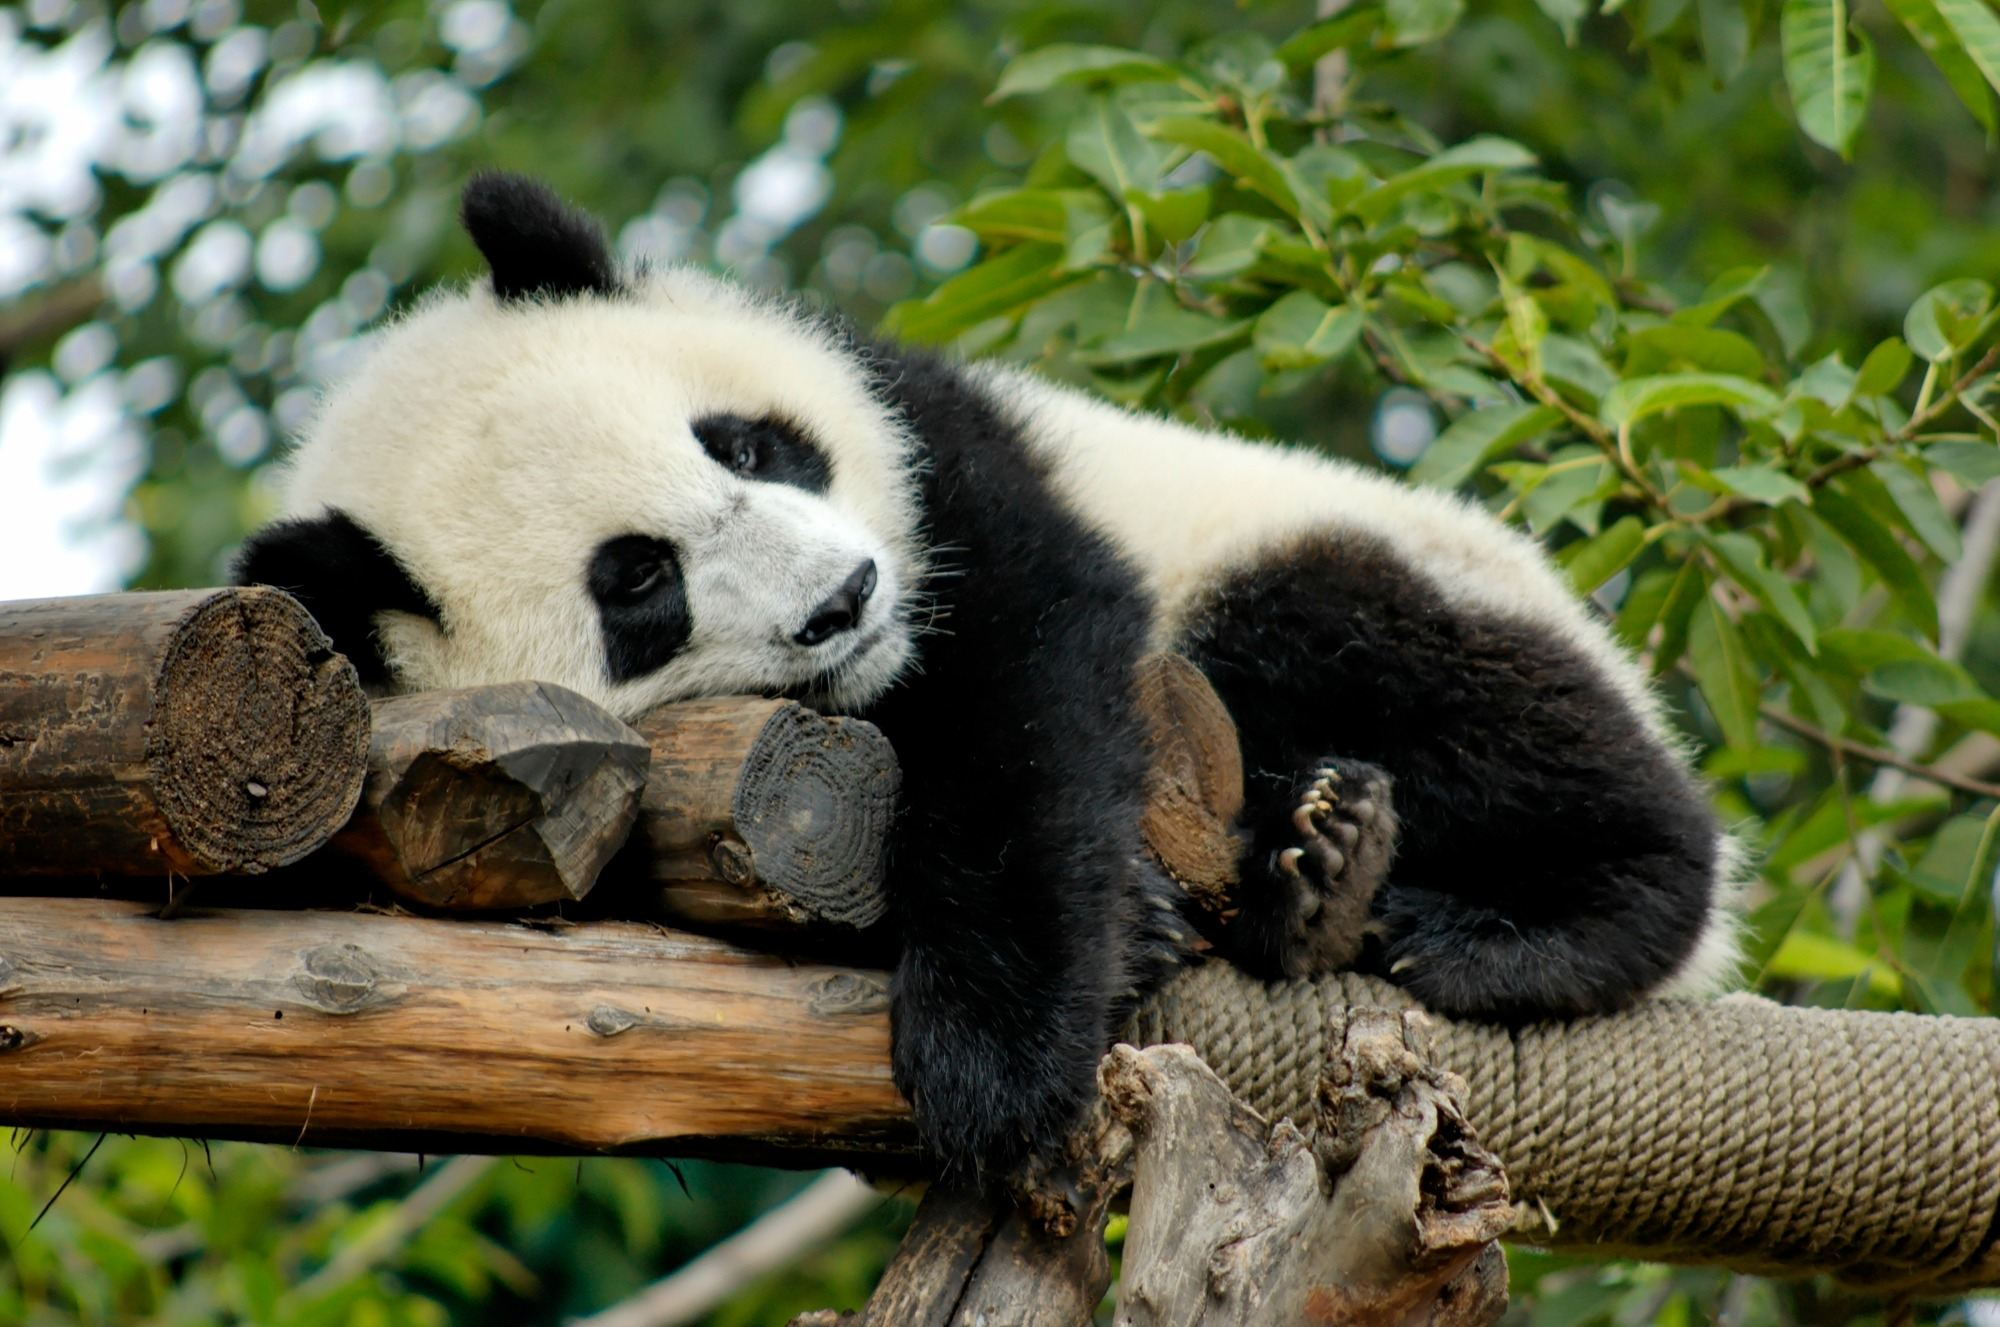 Conservation has already made a difference to pandas